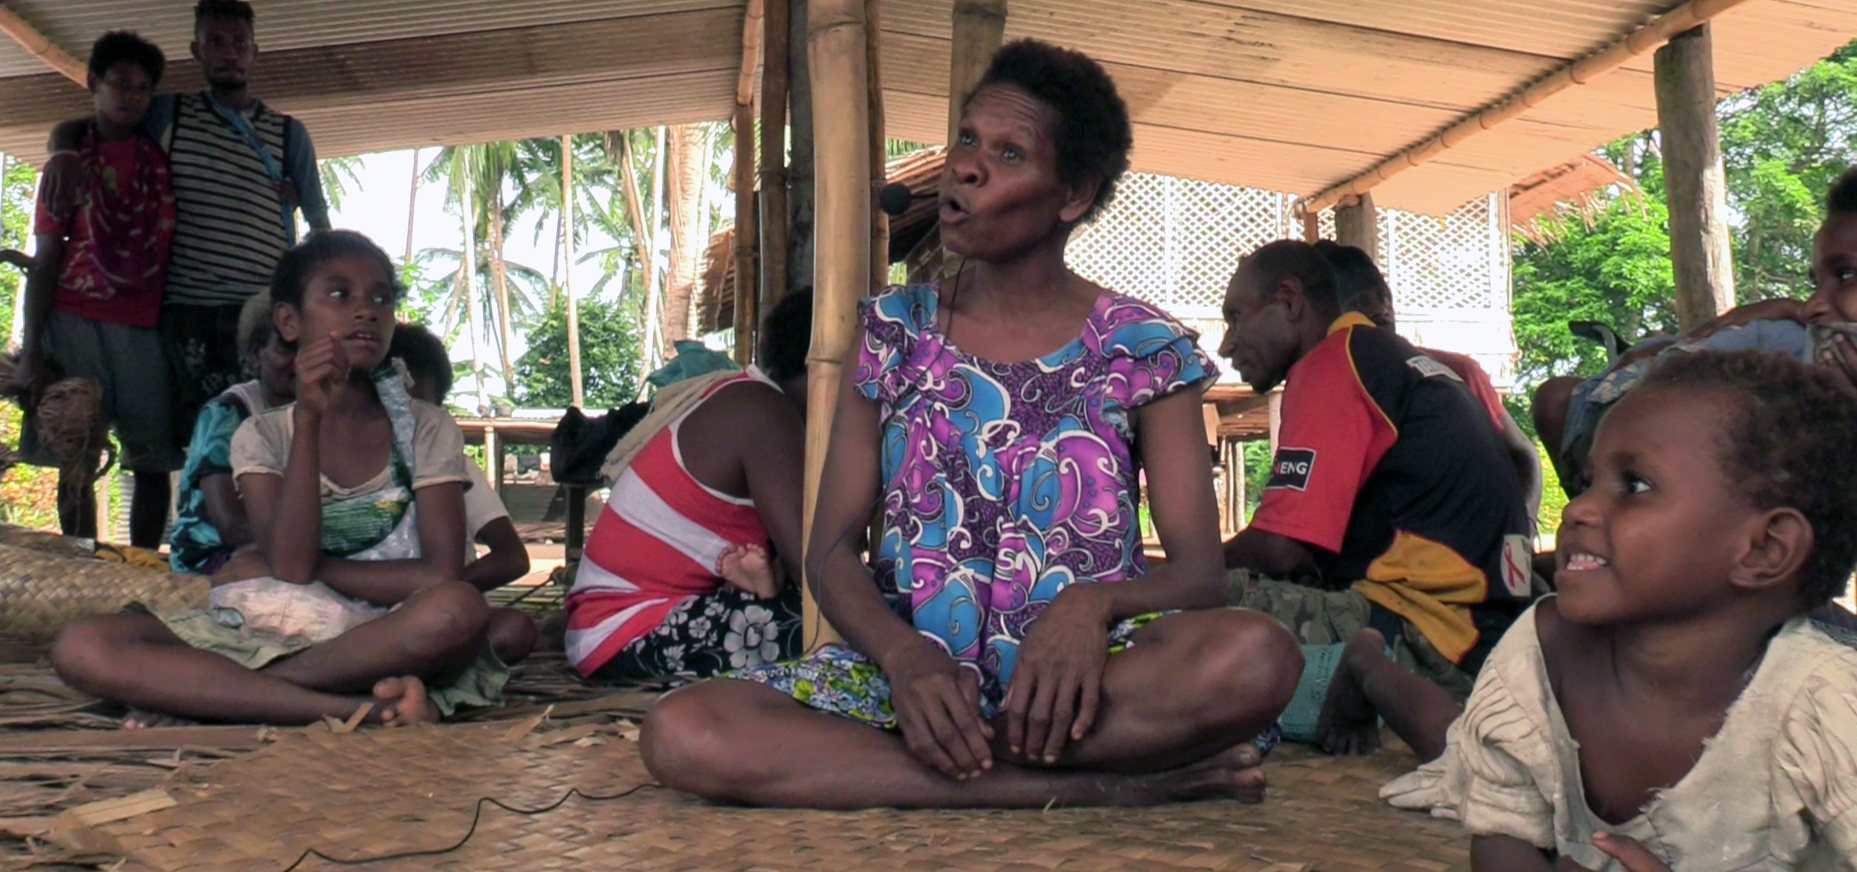 A comprehensive documentation of Bine - a language of Southern New Guinea by Christian Doehler